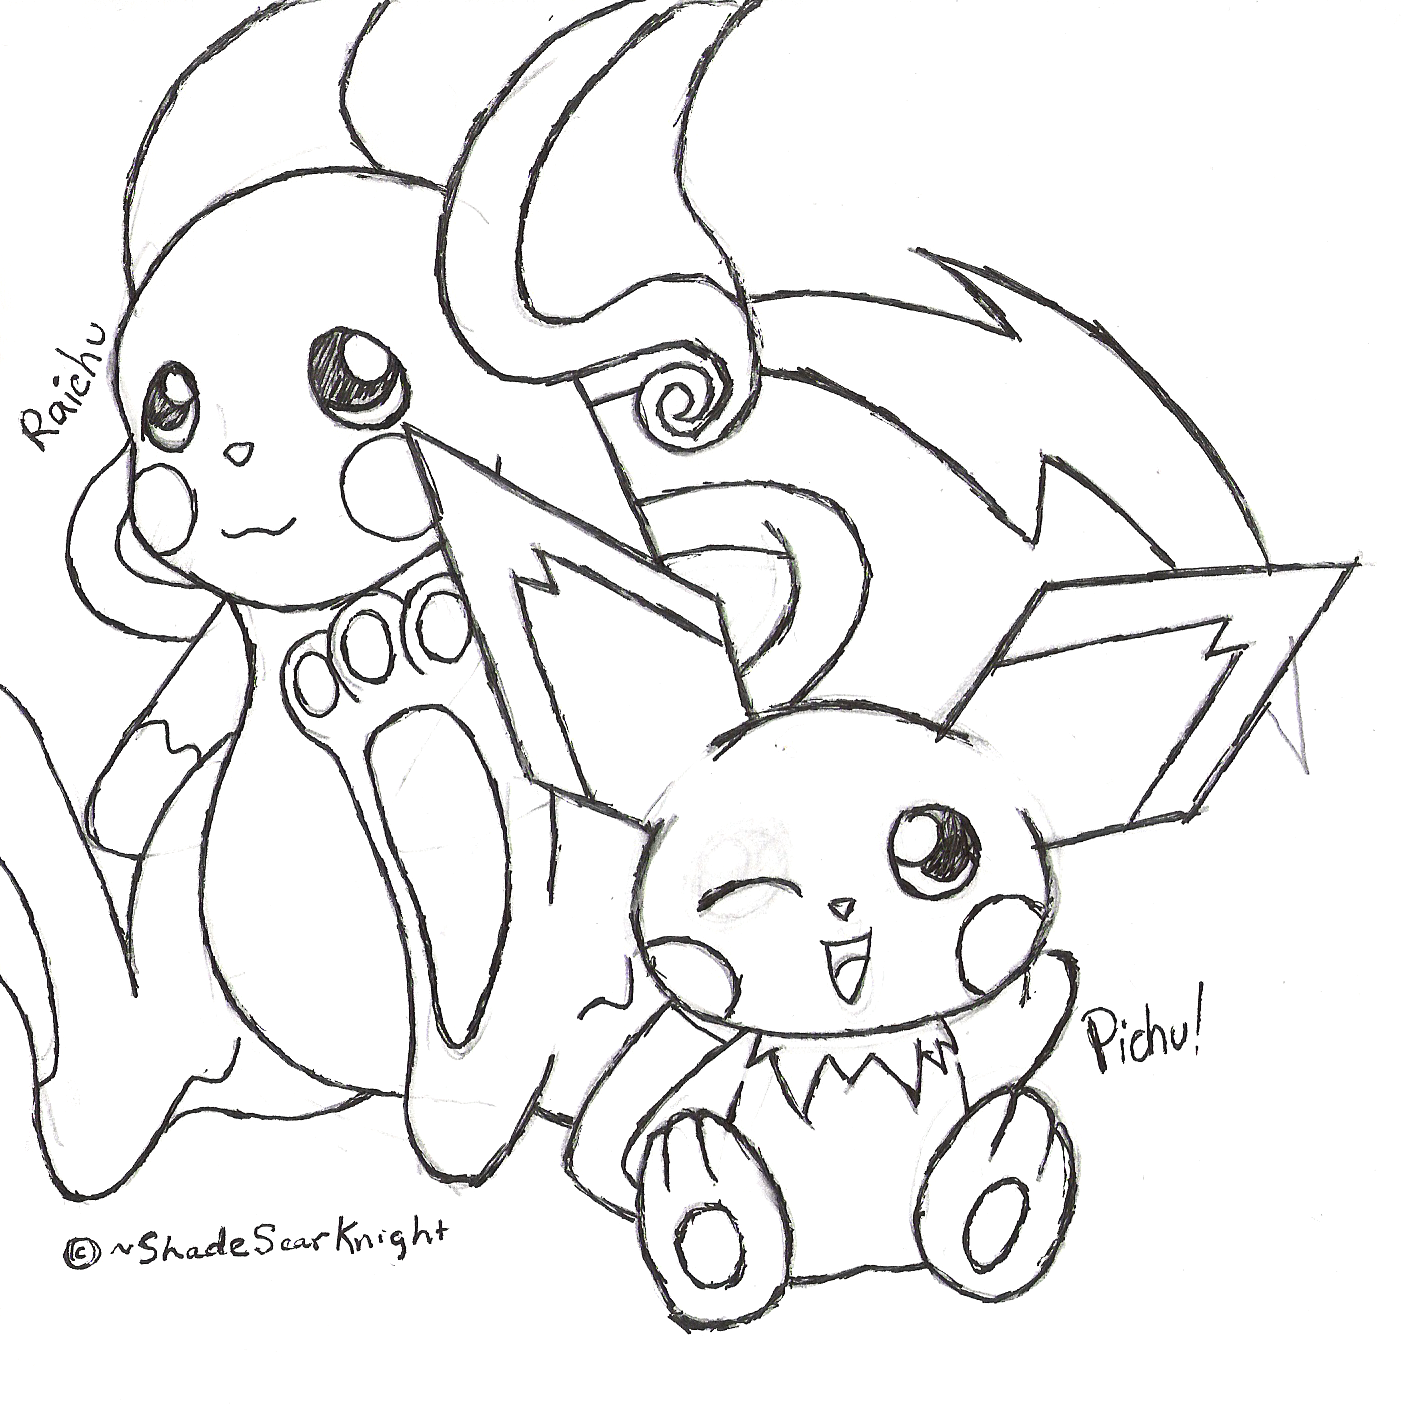 Raichu and pichu request by shadowscarknight on deviantart for Pichu coloring pages